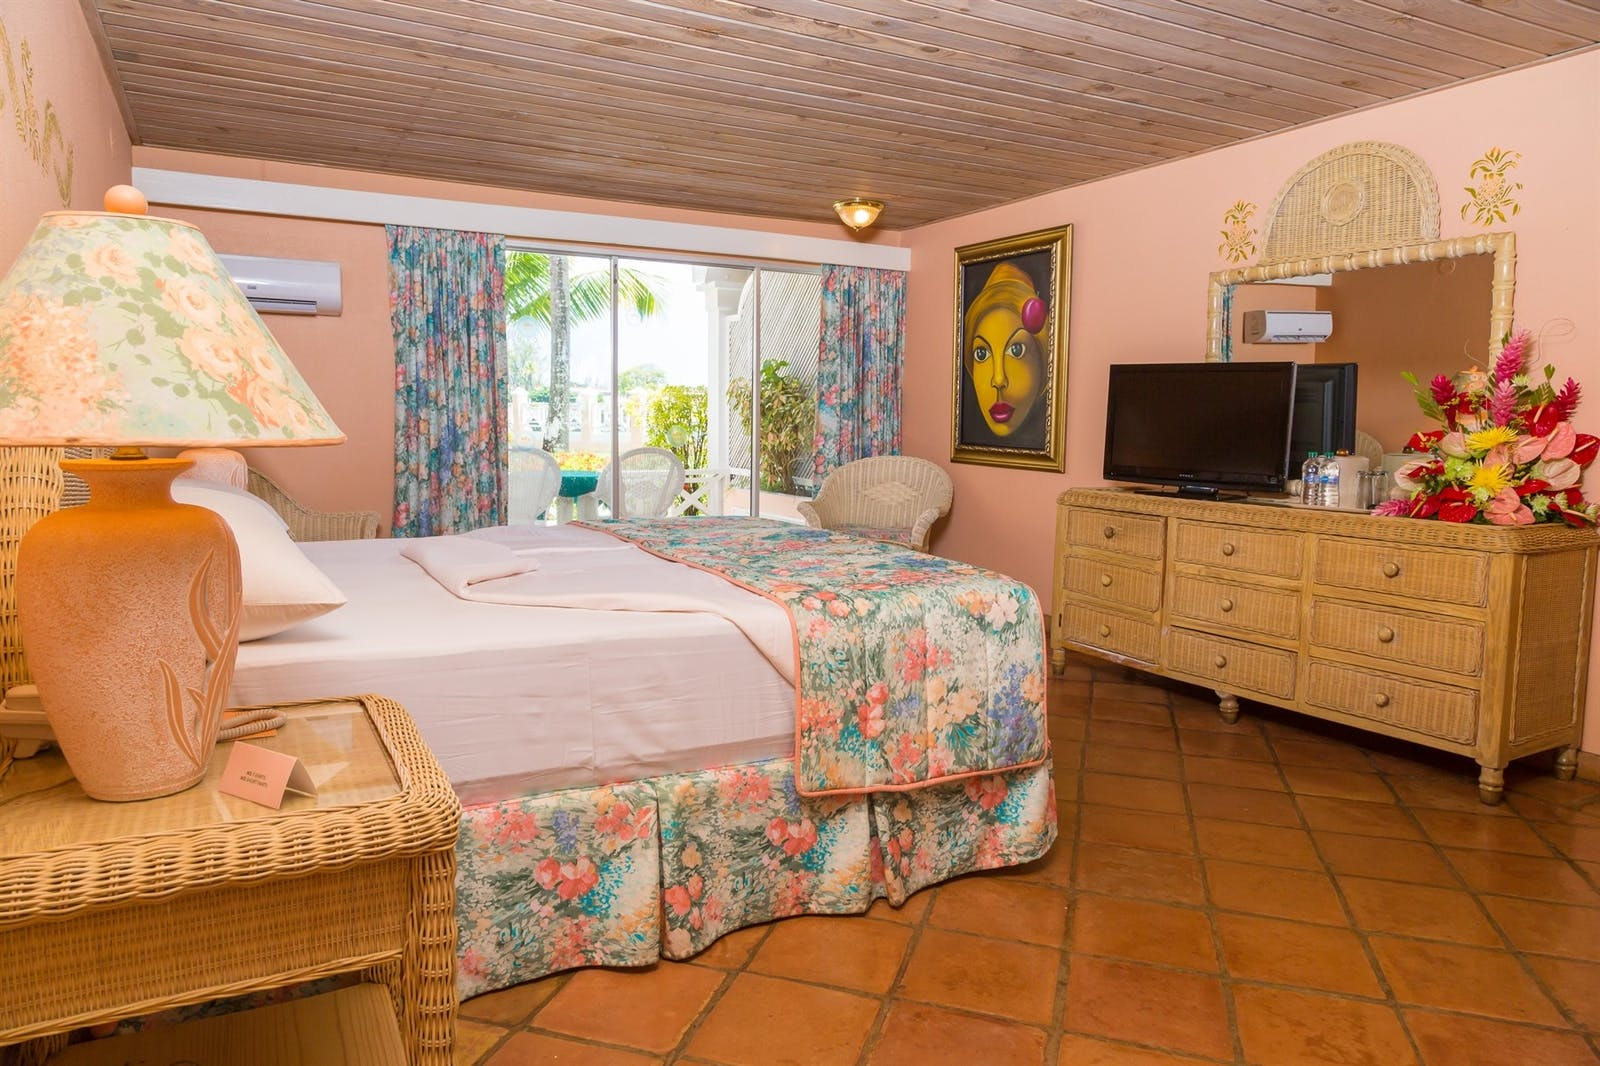 bedroom interior at coco reef resort tobago